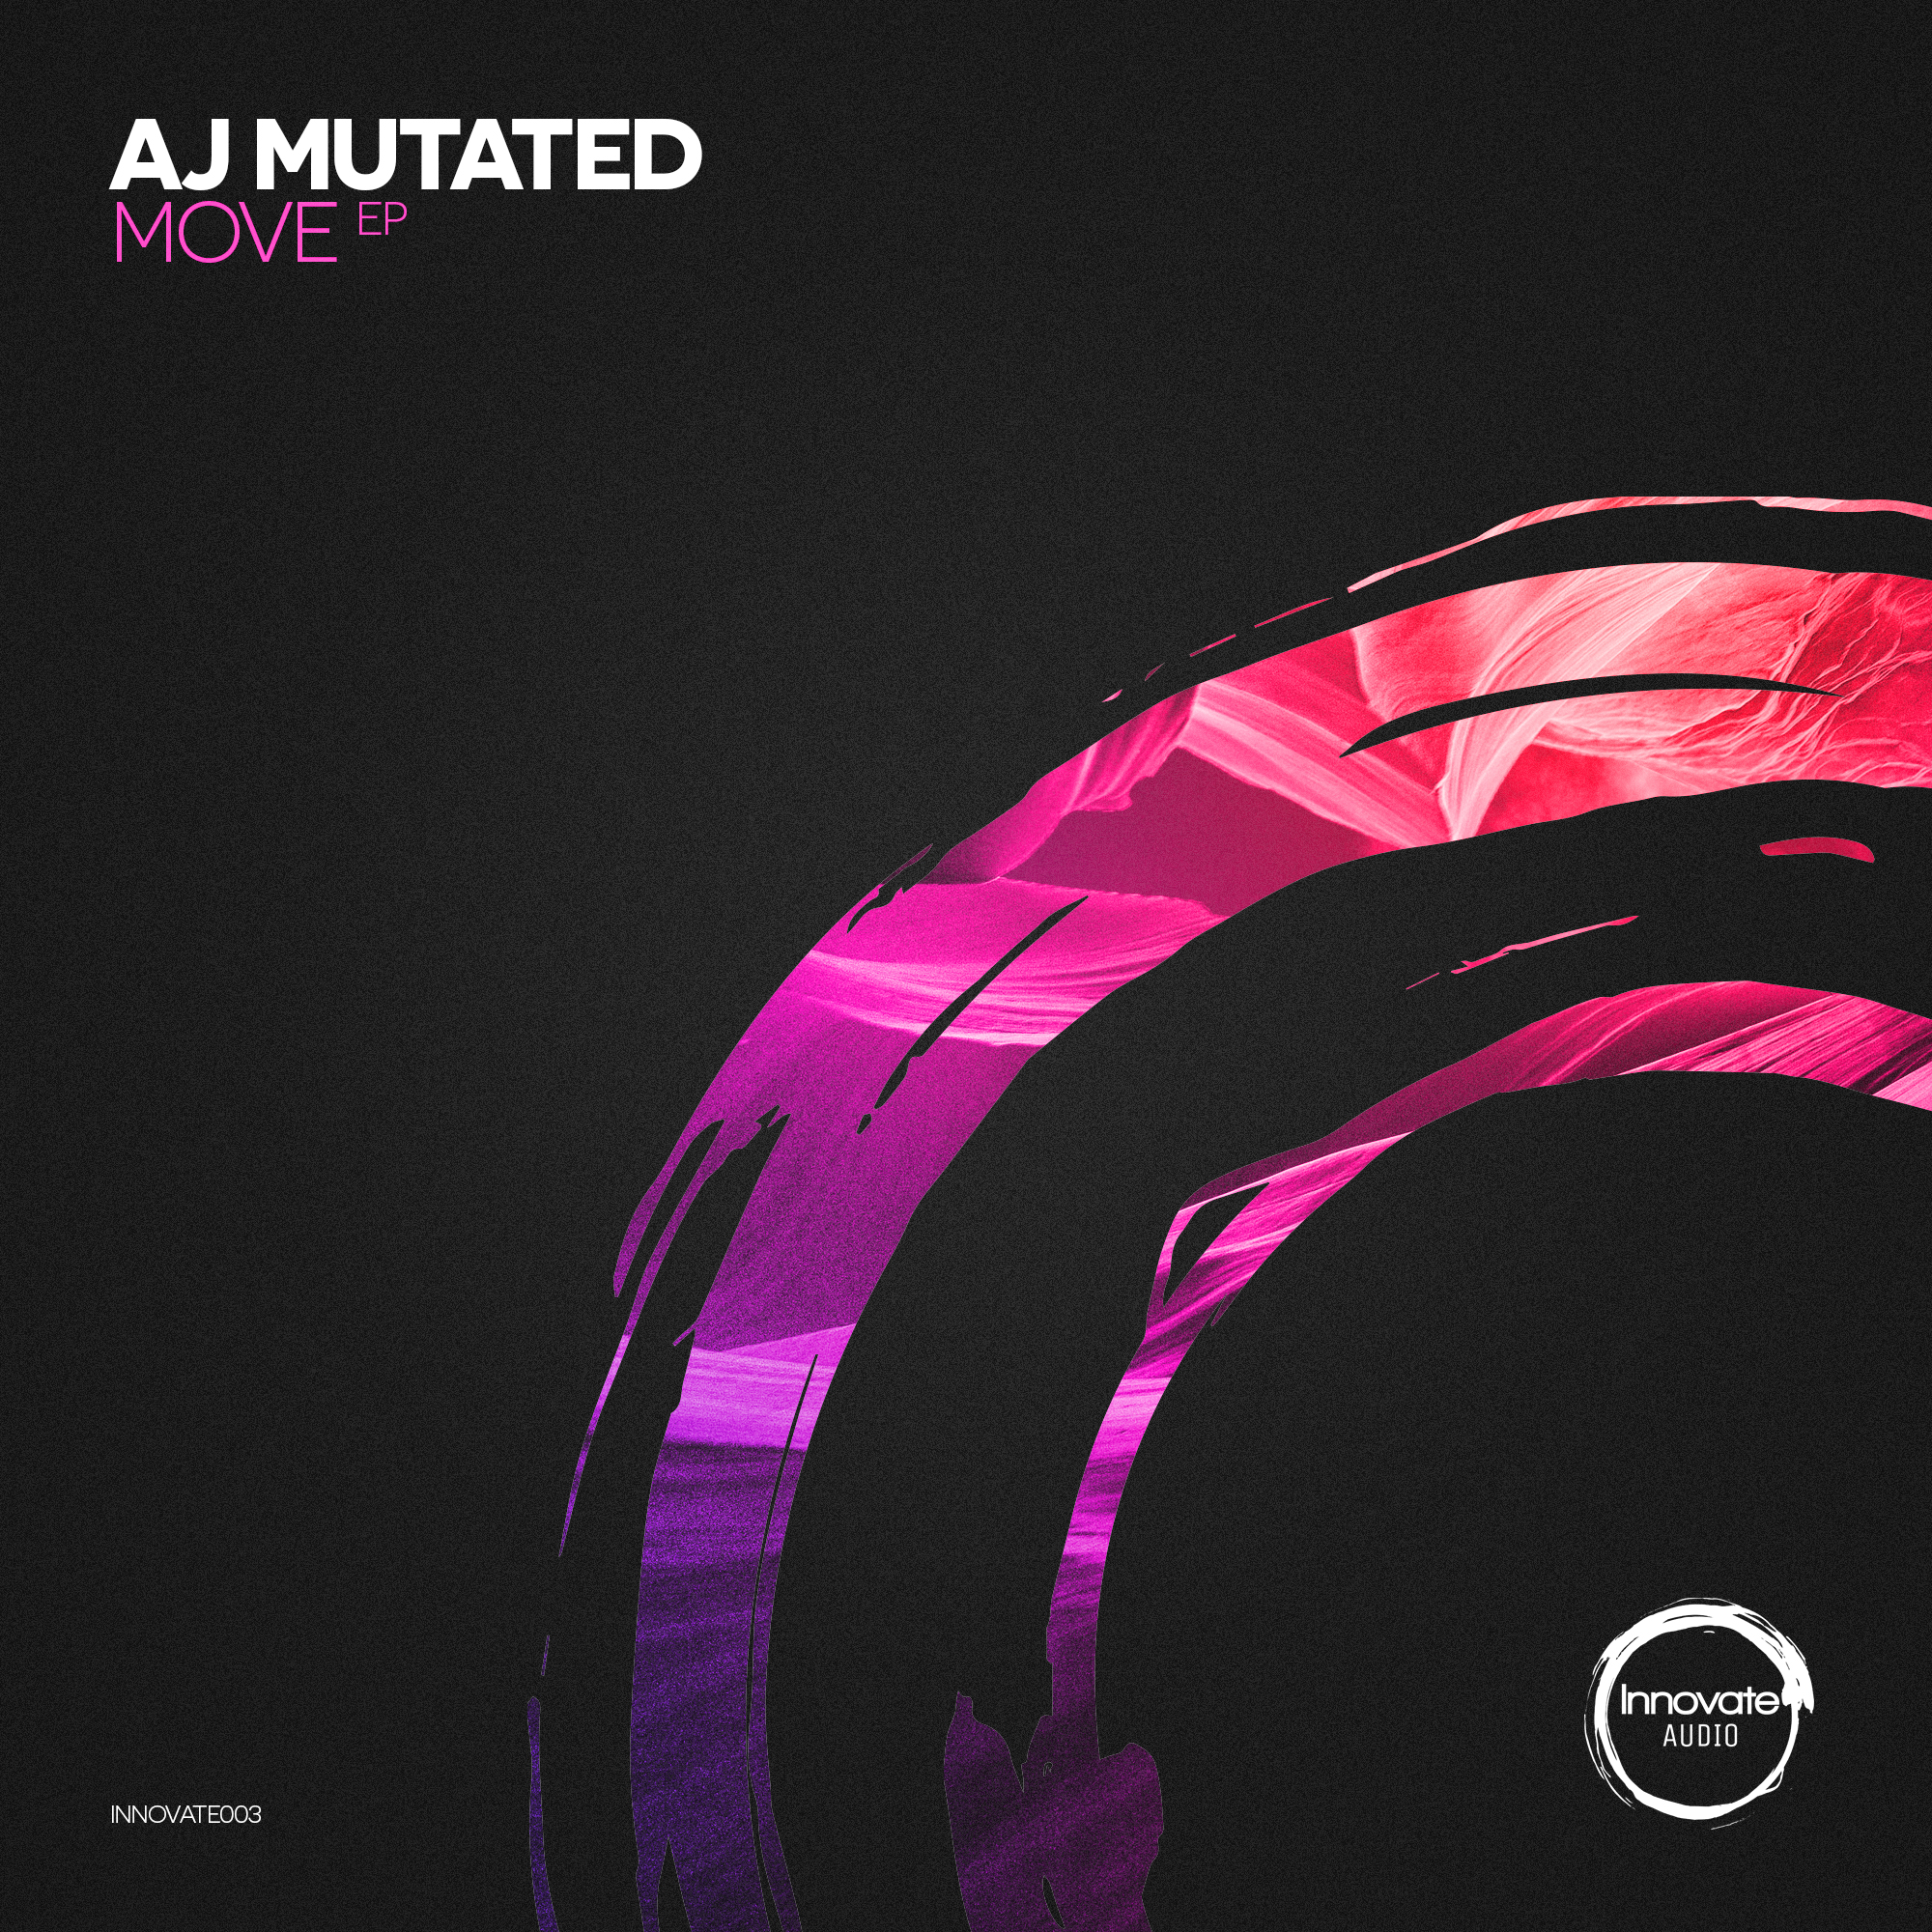 AJ Mutated releases MOVE EP on Innovative Audio